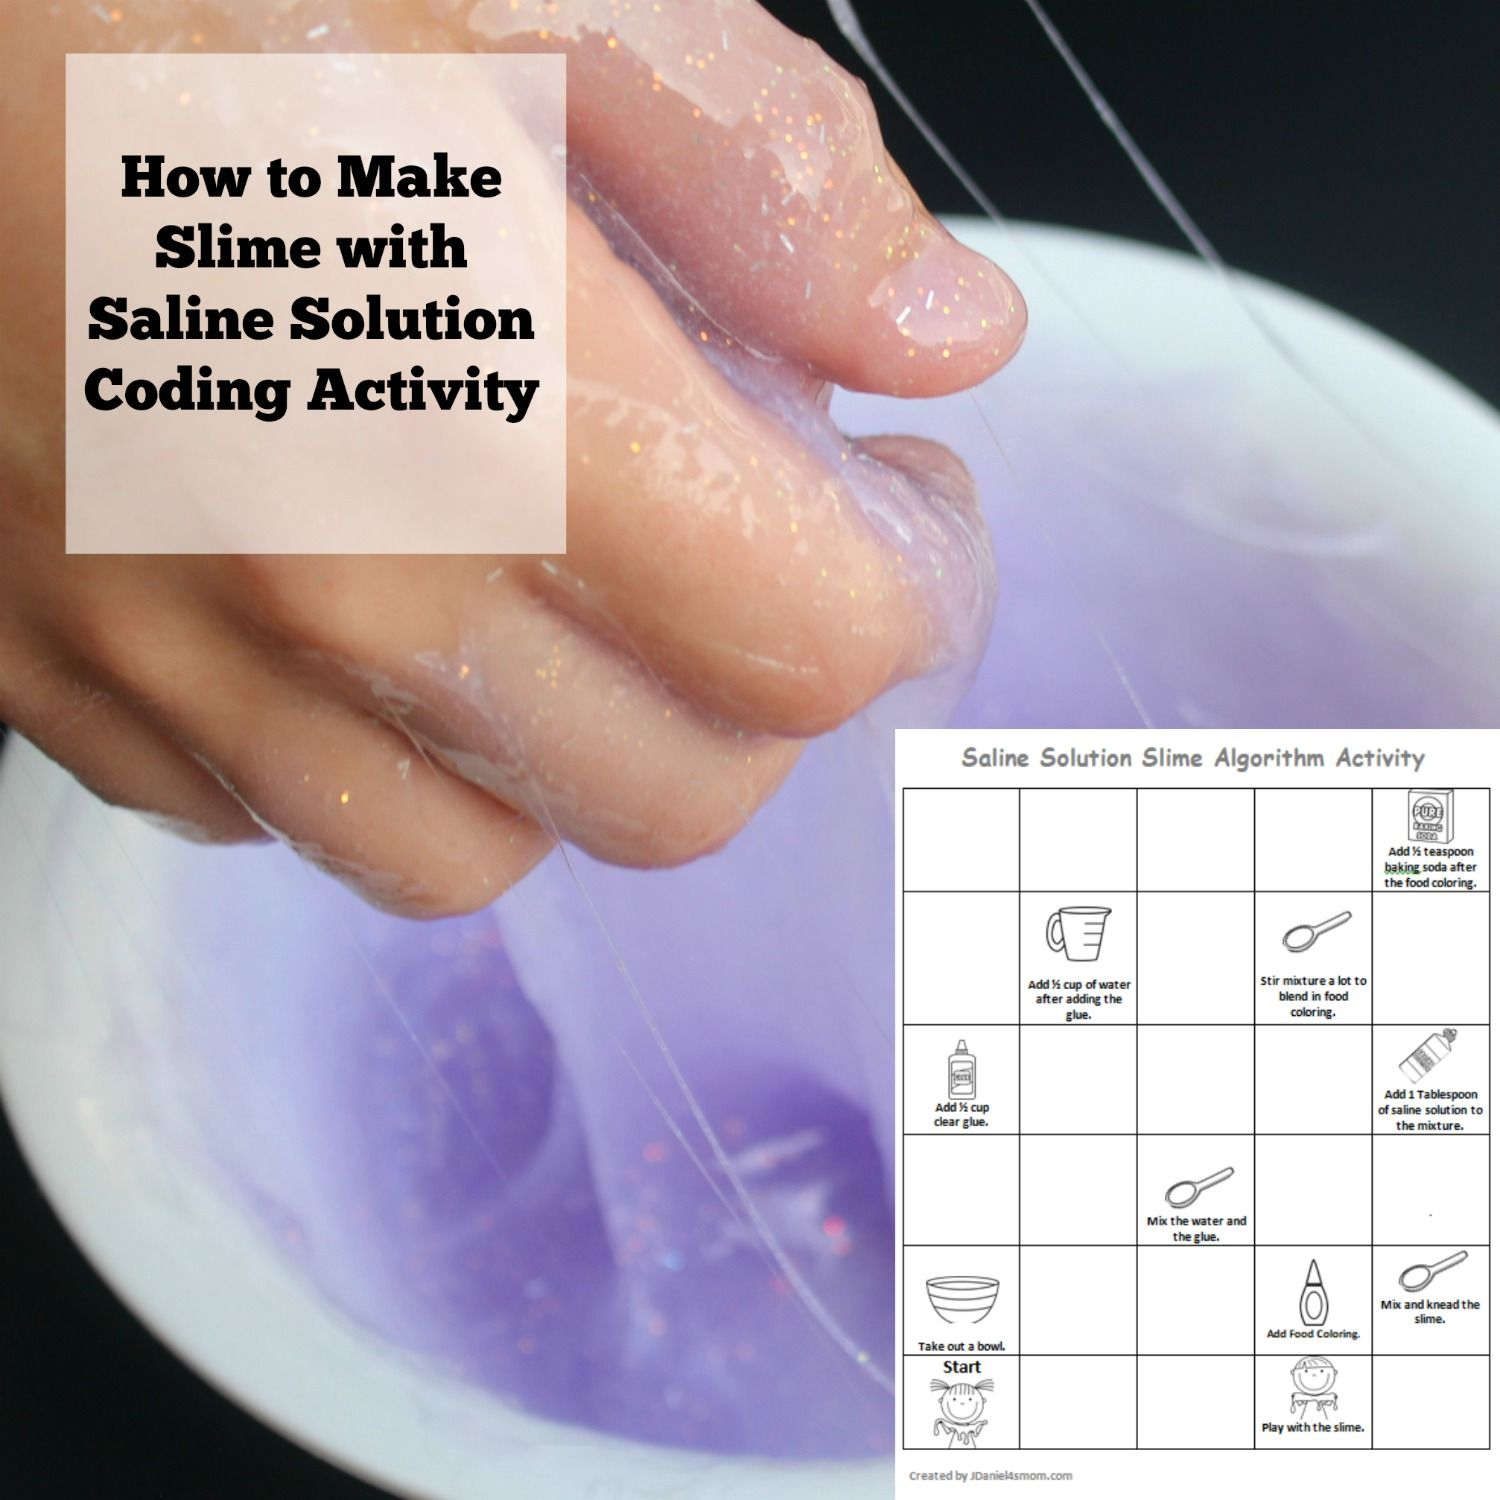 How To Make Slime With Saline Solution Coding Activity